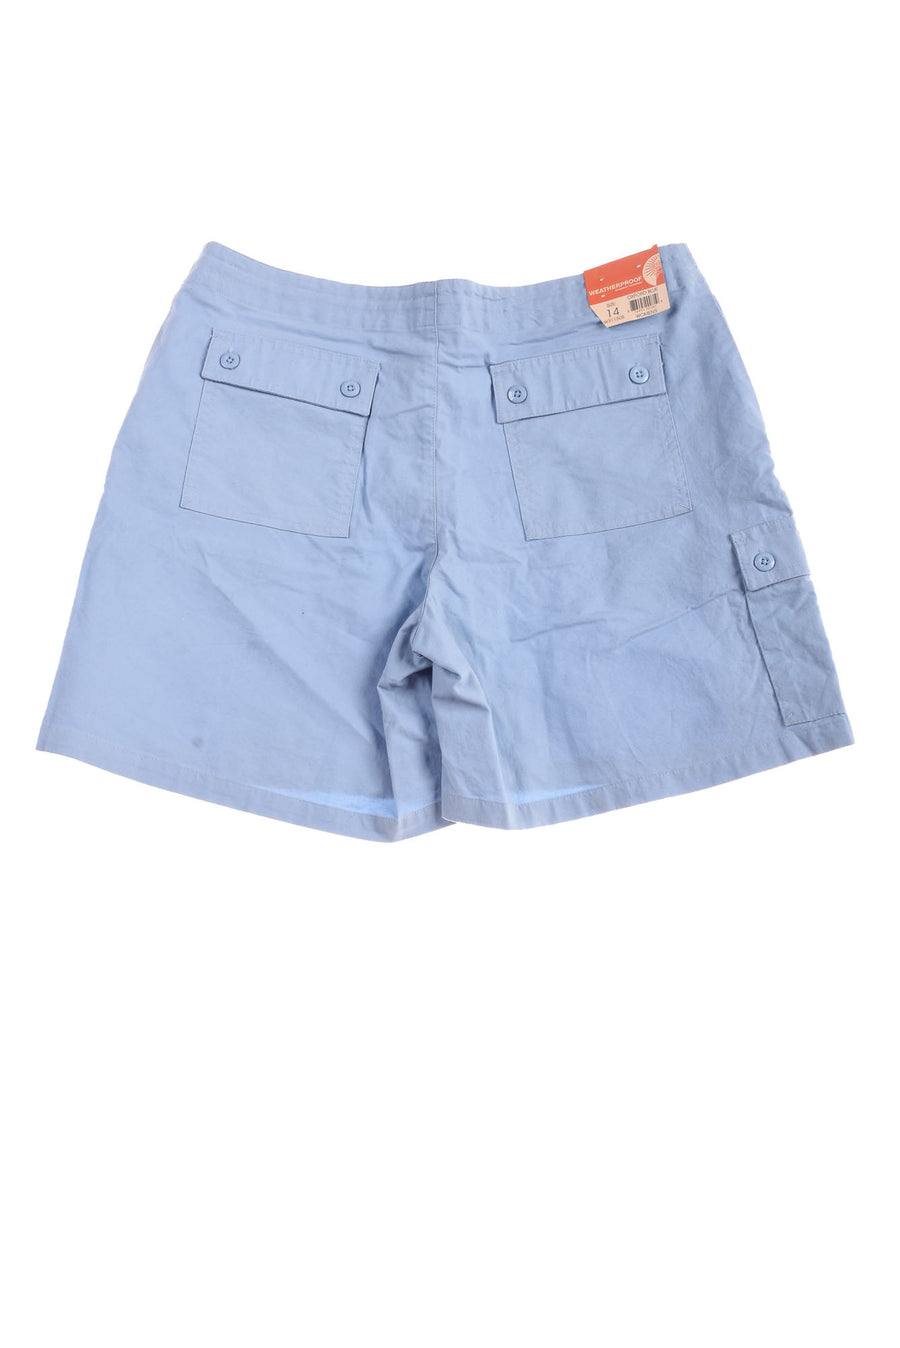 NEW Weatherproof Garment Company Women's Shorts 14 Oxford Blue